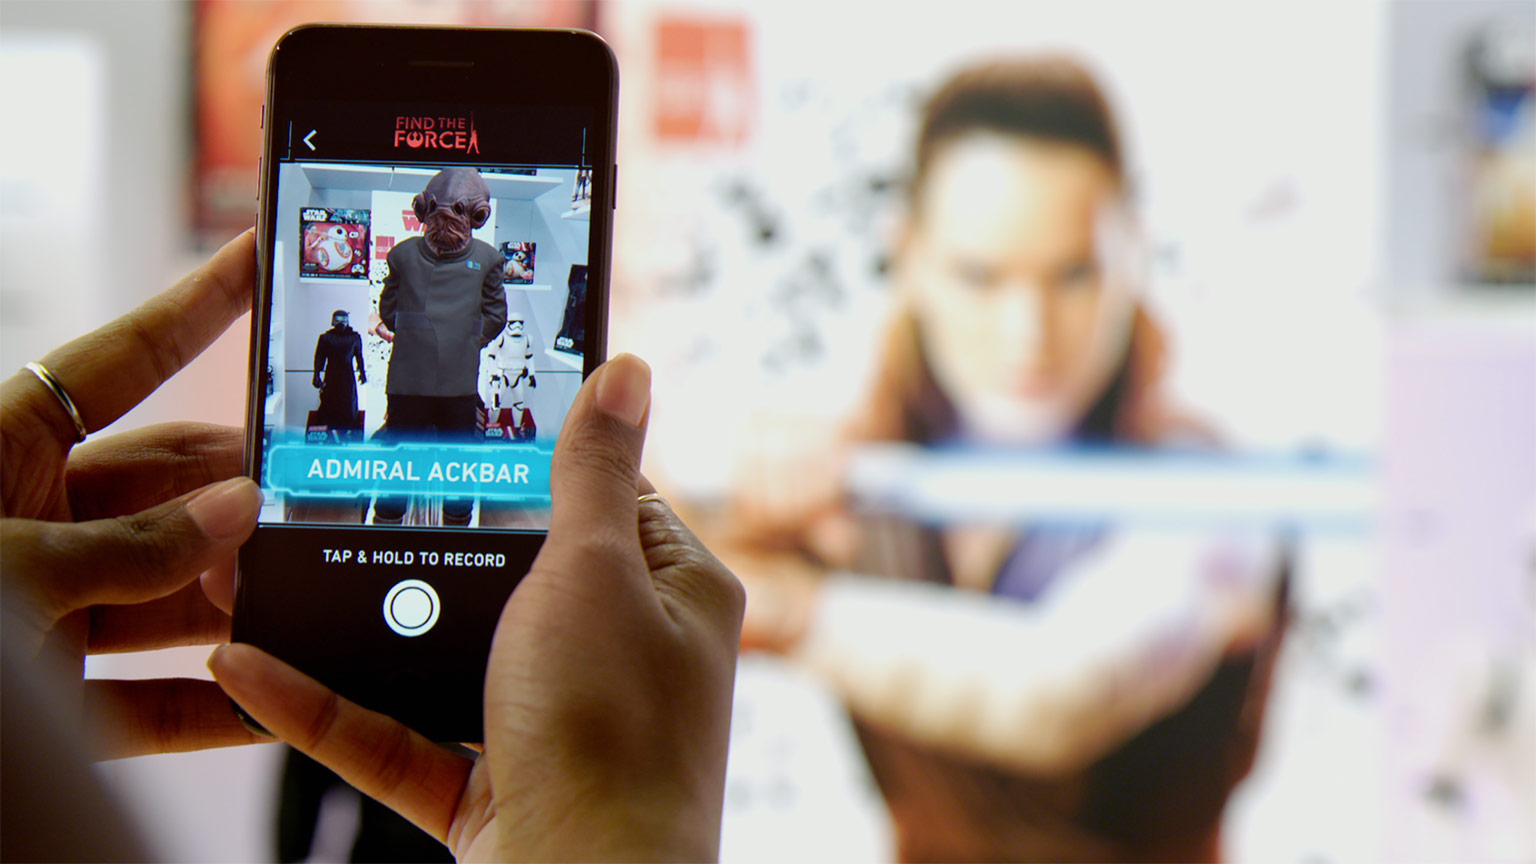 The New Star Wars AR App Will Allow You To Take Selfies With Your Favorite Characters